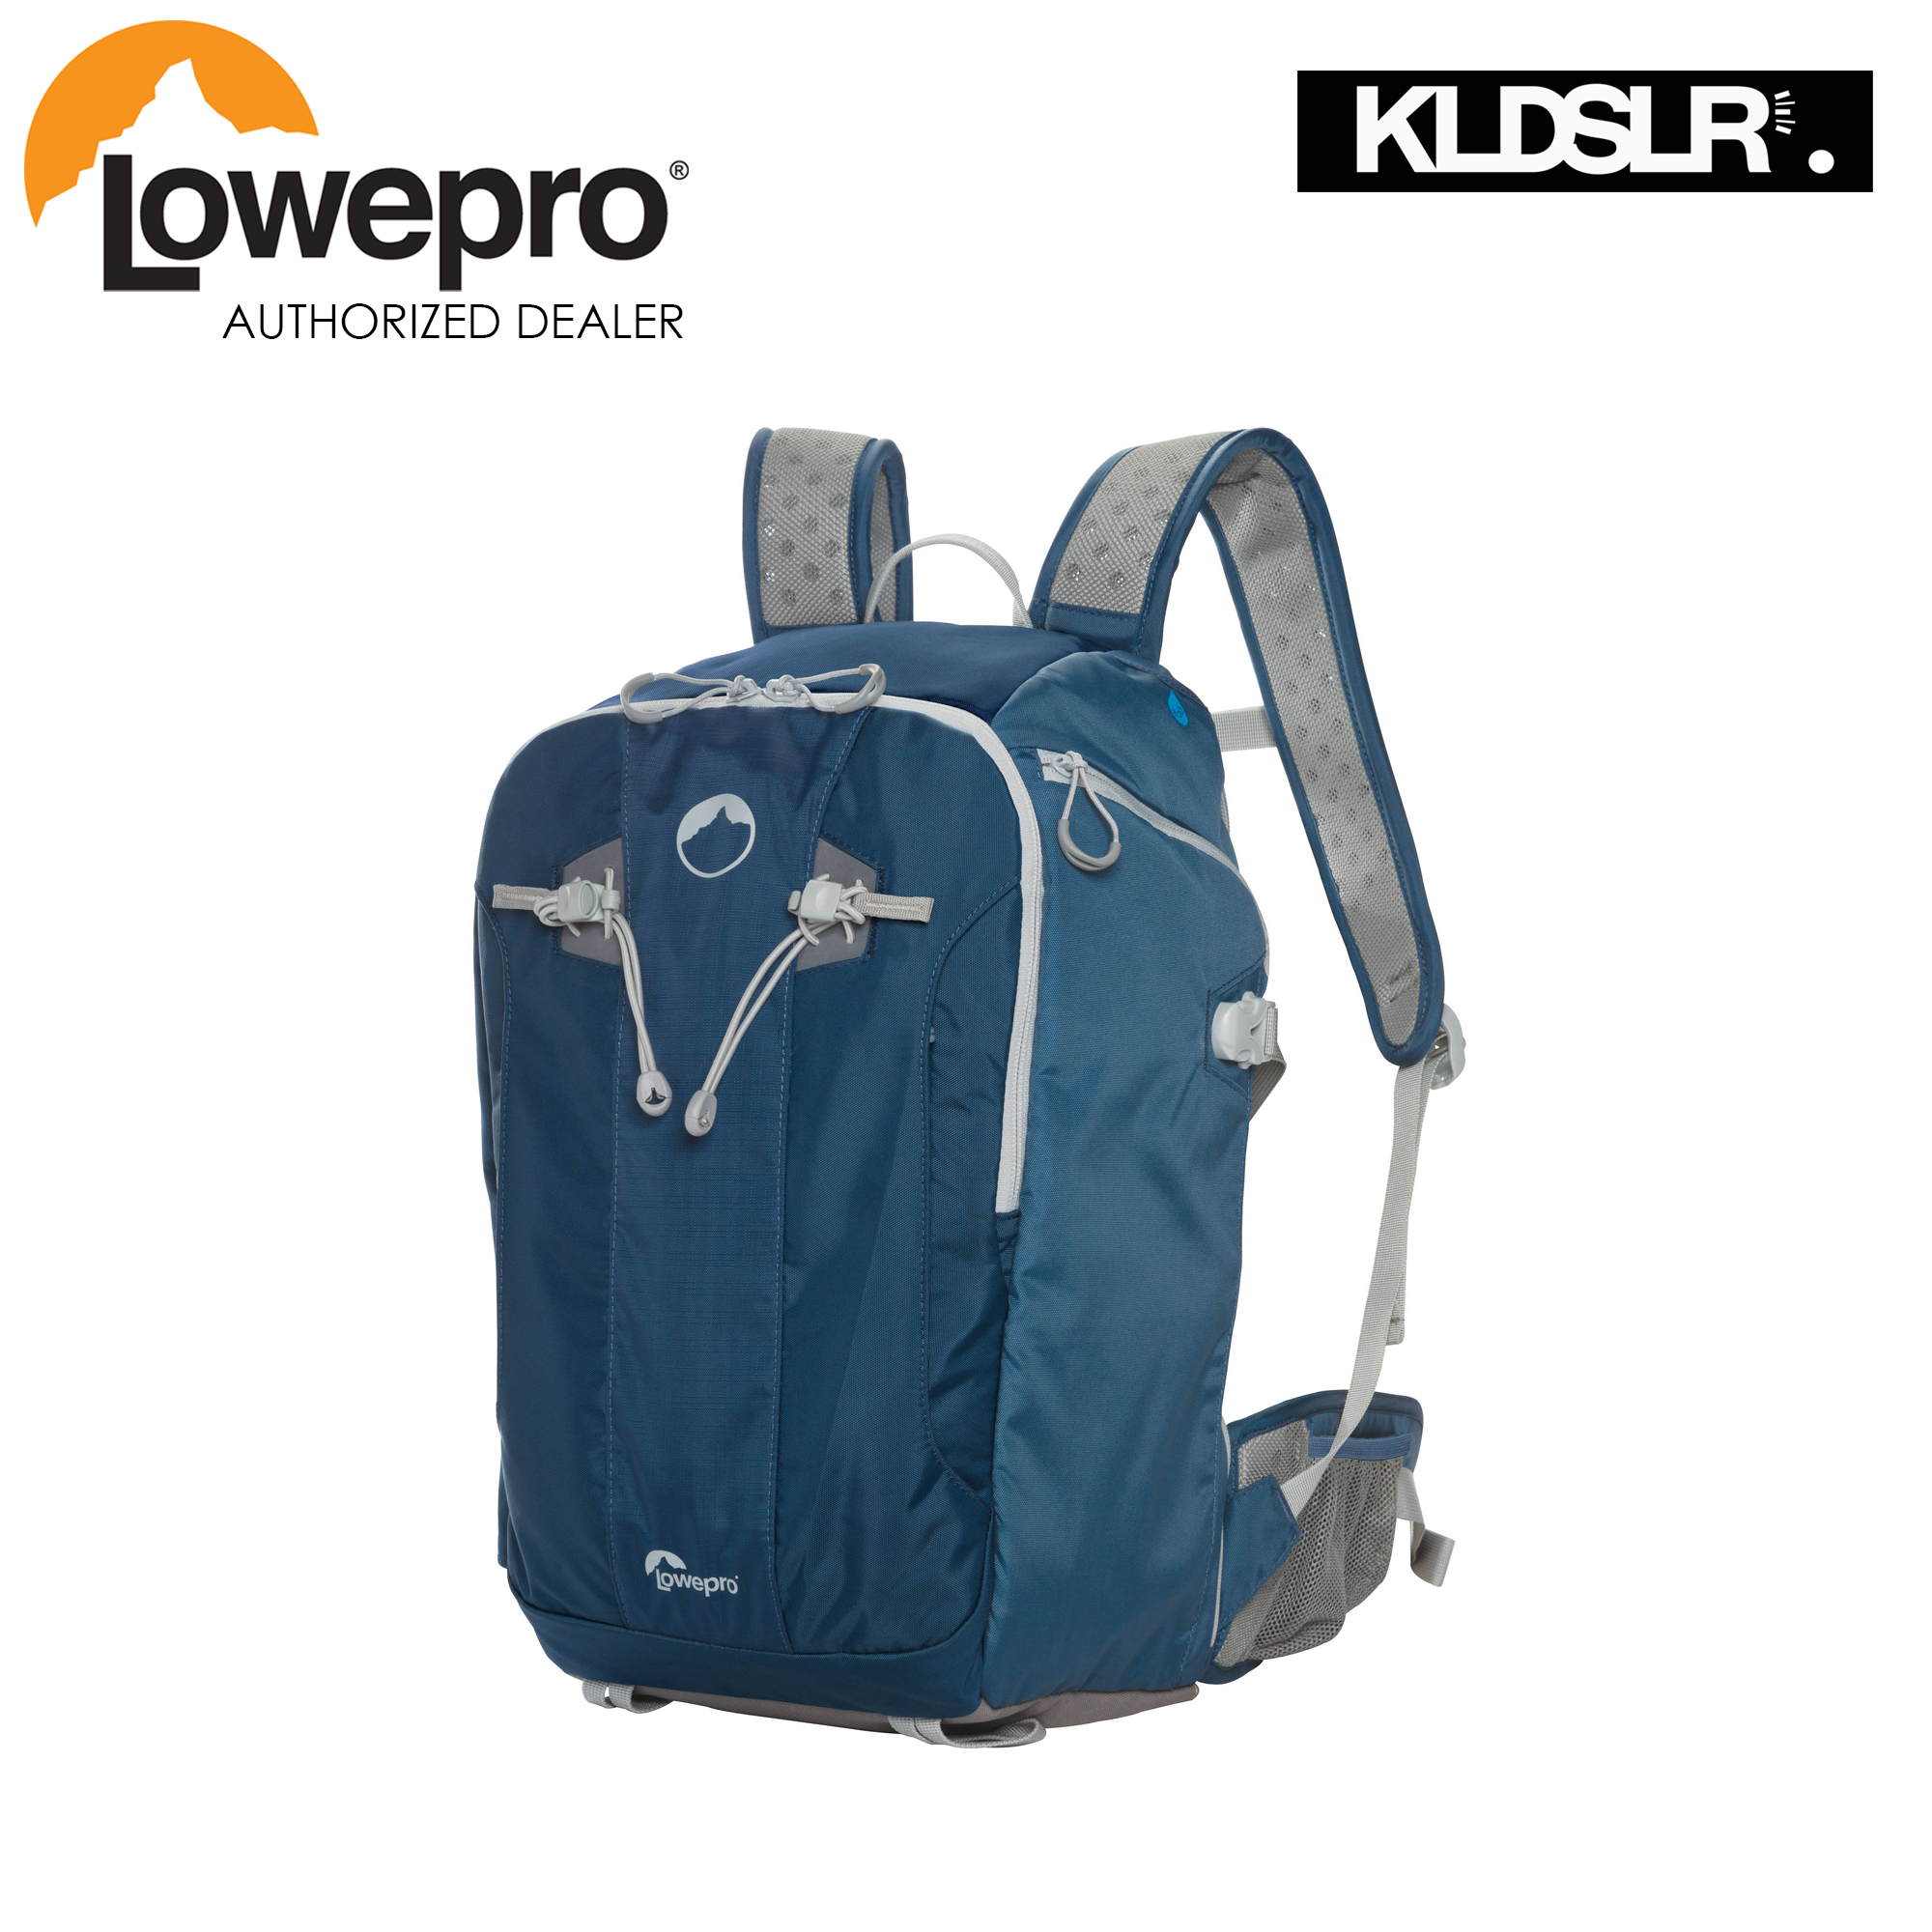 Lowepro Flipside Sport 20l Aw Daypack Galaxy Blue Light Gray Accents Viewpoint Cs 60